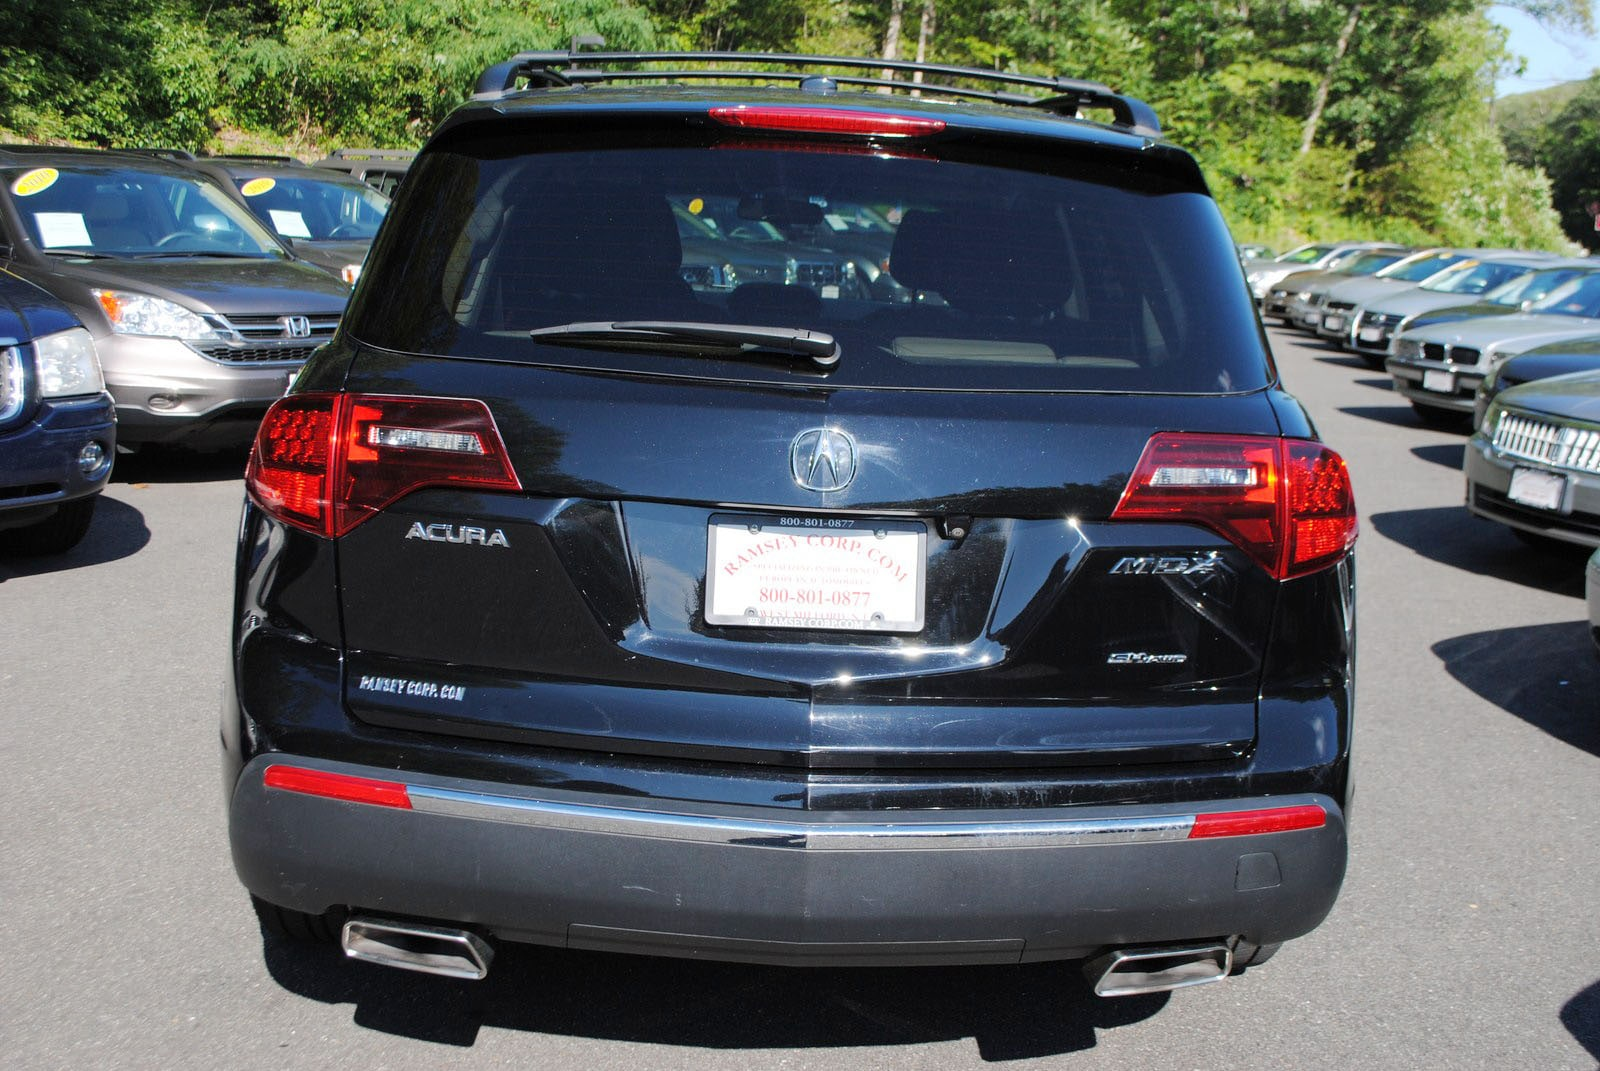 Used 2010 Acura Mdx For Sale West Milford Nj